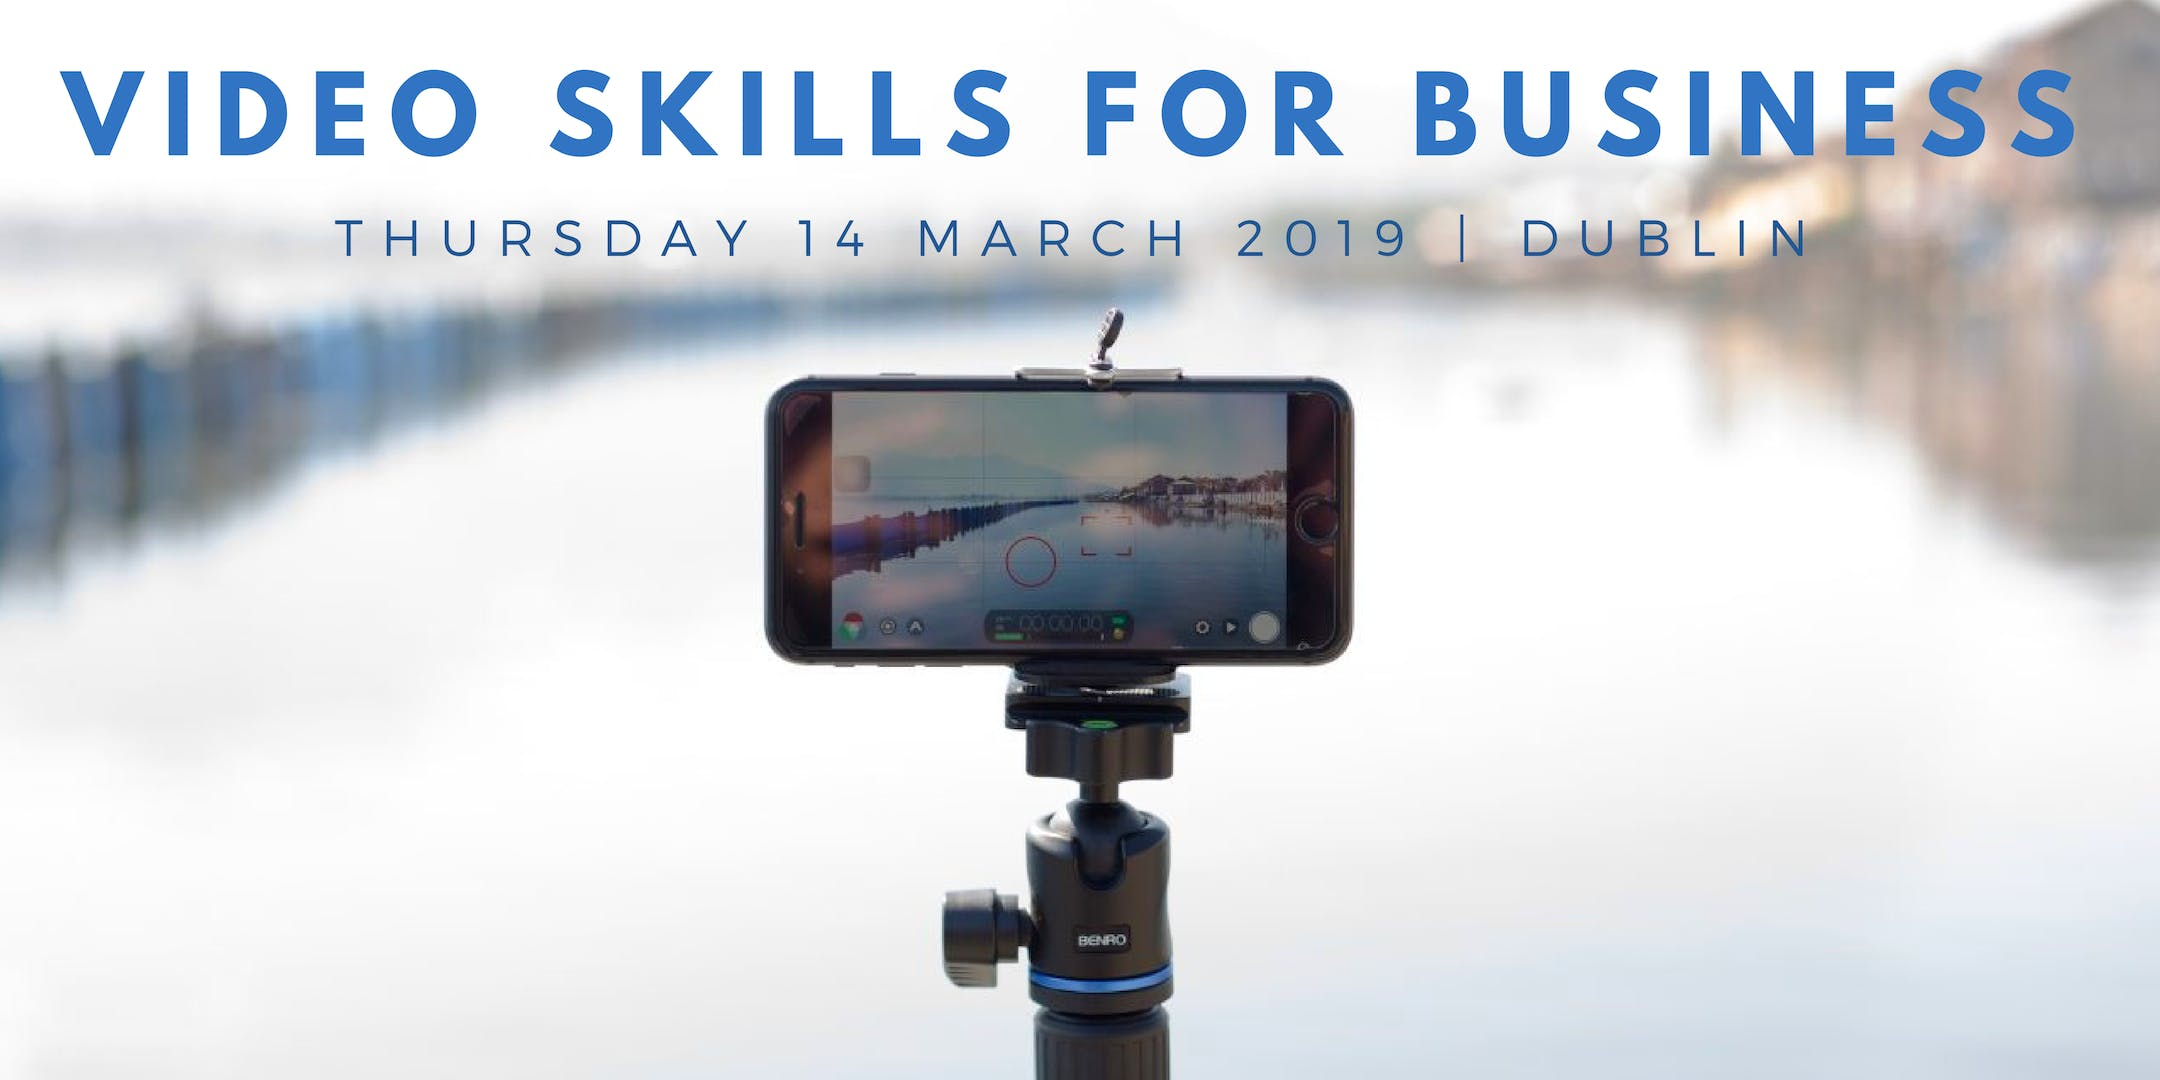 VIDEO SKILLS FOR BUSINESS | VIDEO TRAINING DUBLIN Thursday 14th March 2019